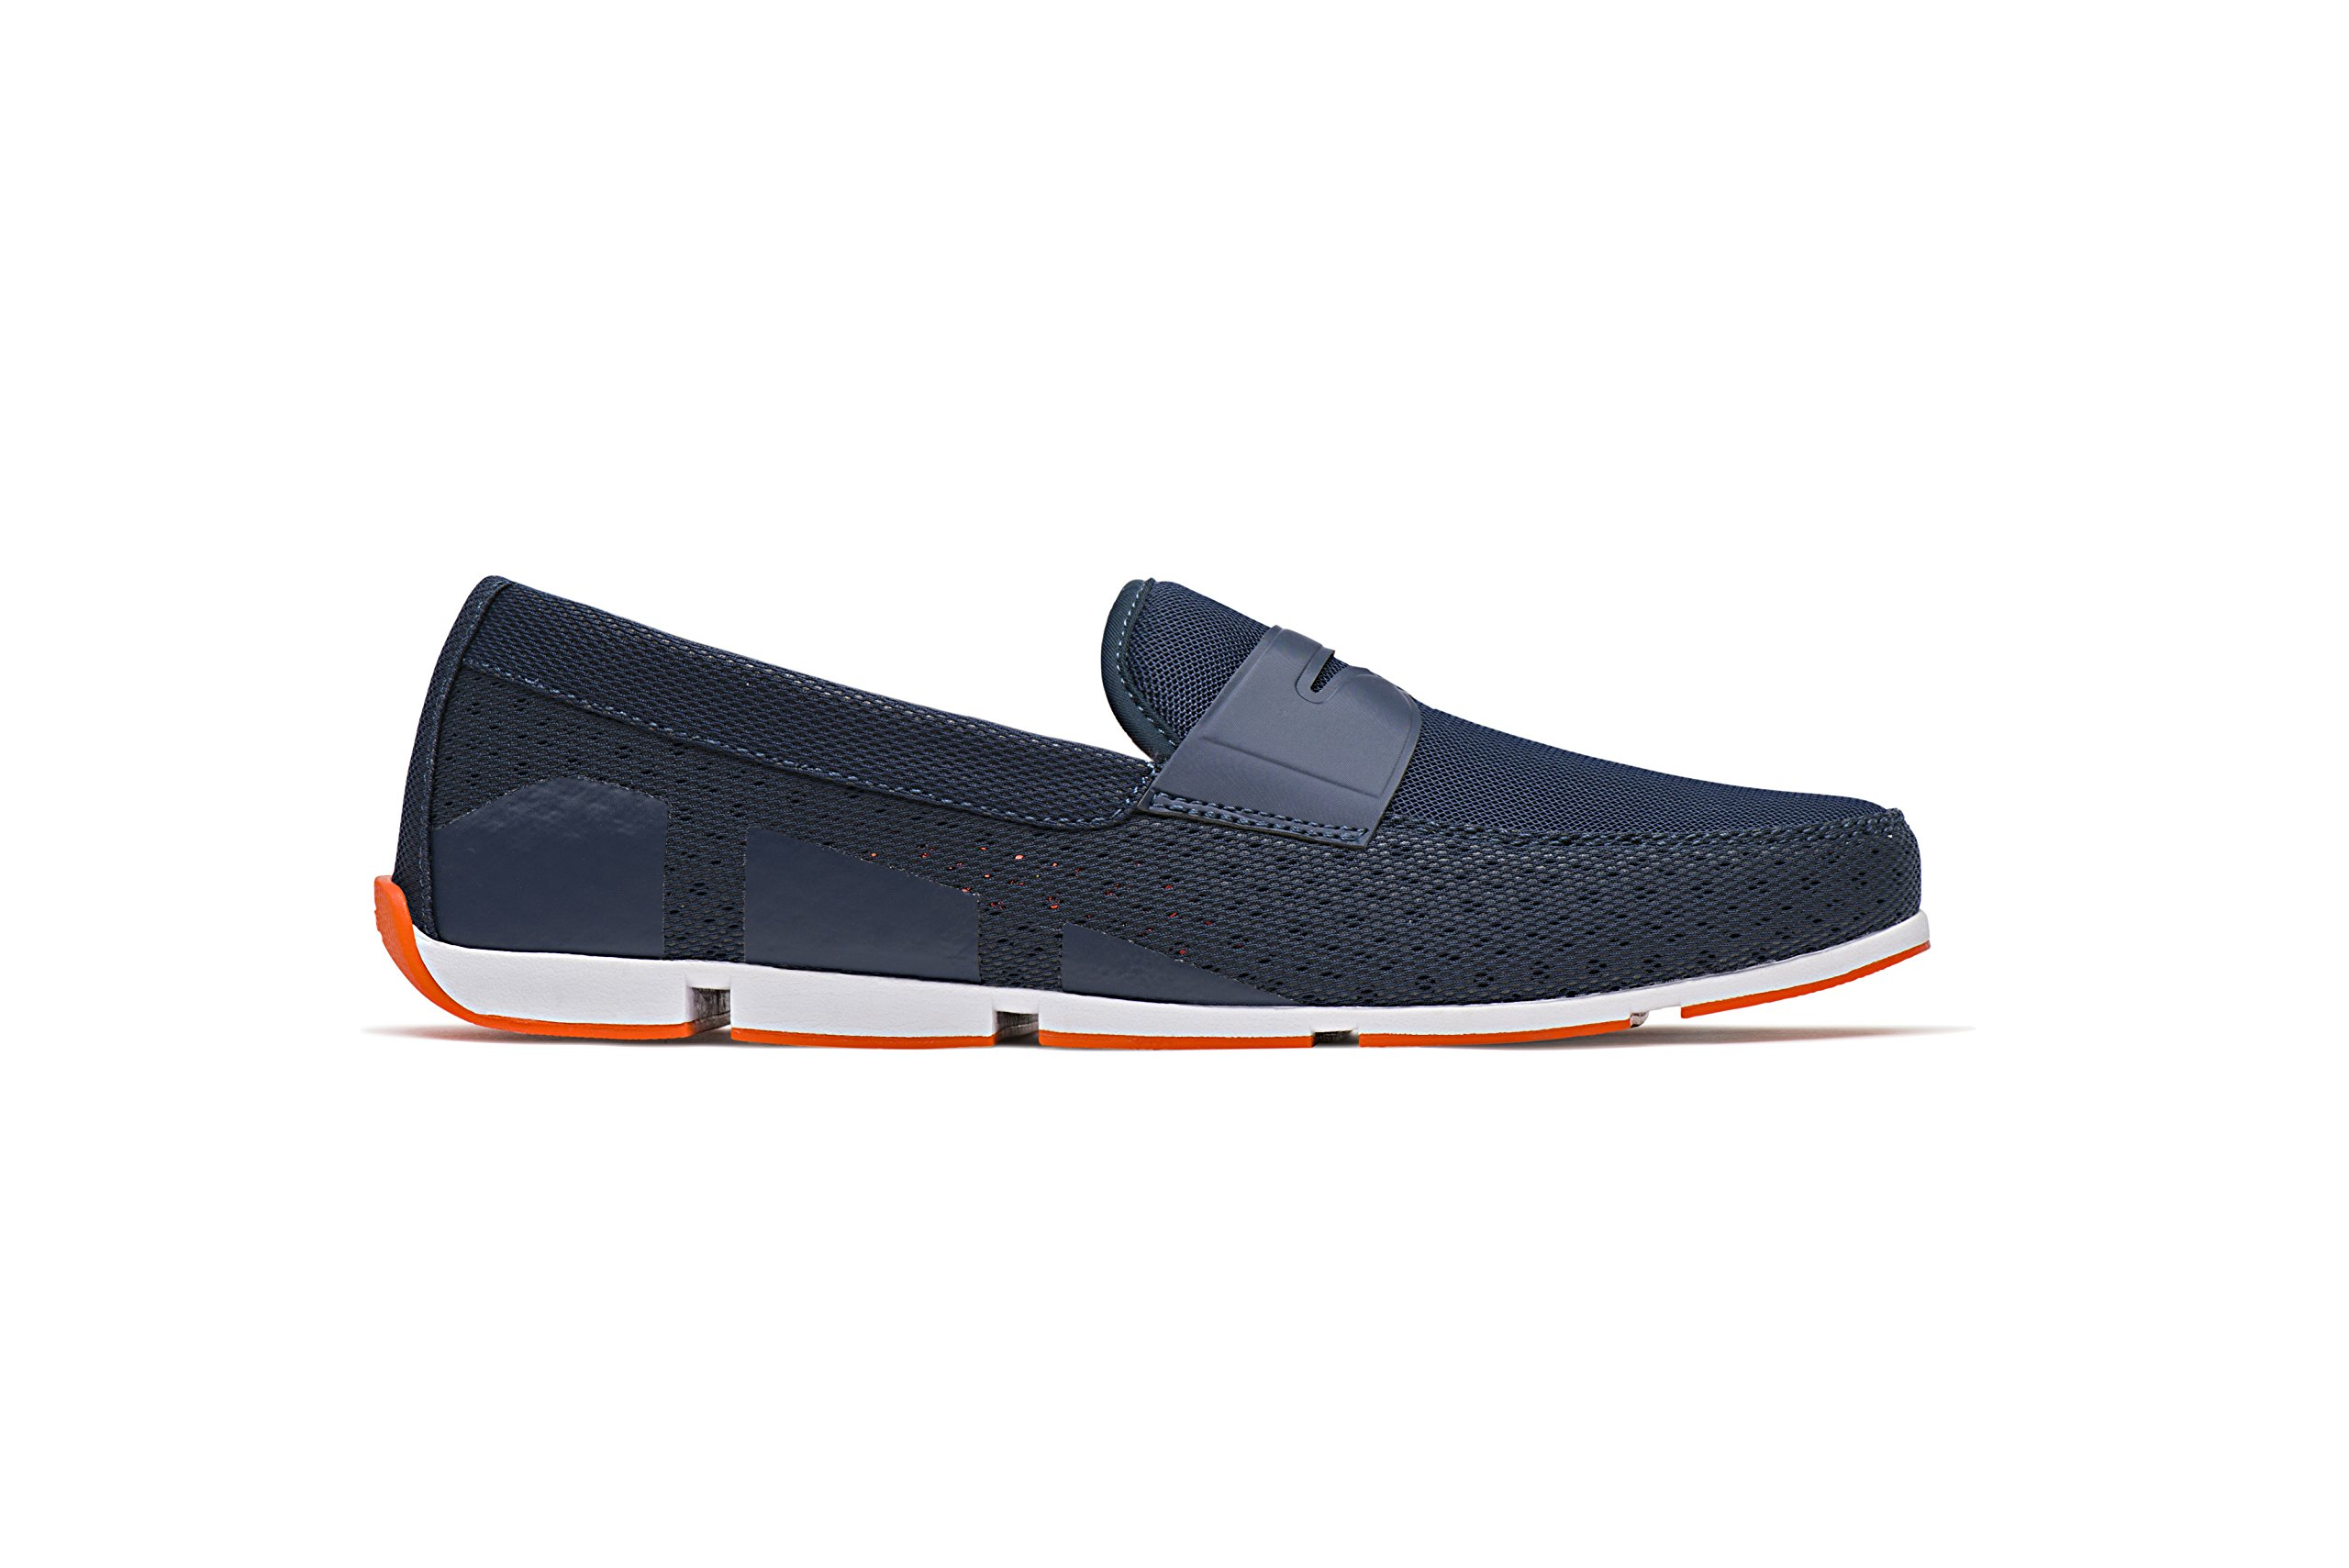 SWIMS Men's Breeze Penny Loafer For Pool and Summer, Lightweight & Flexible - Navy, 9